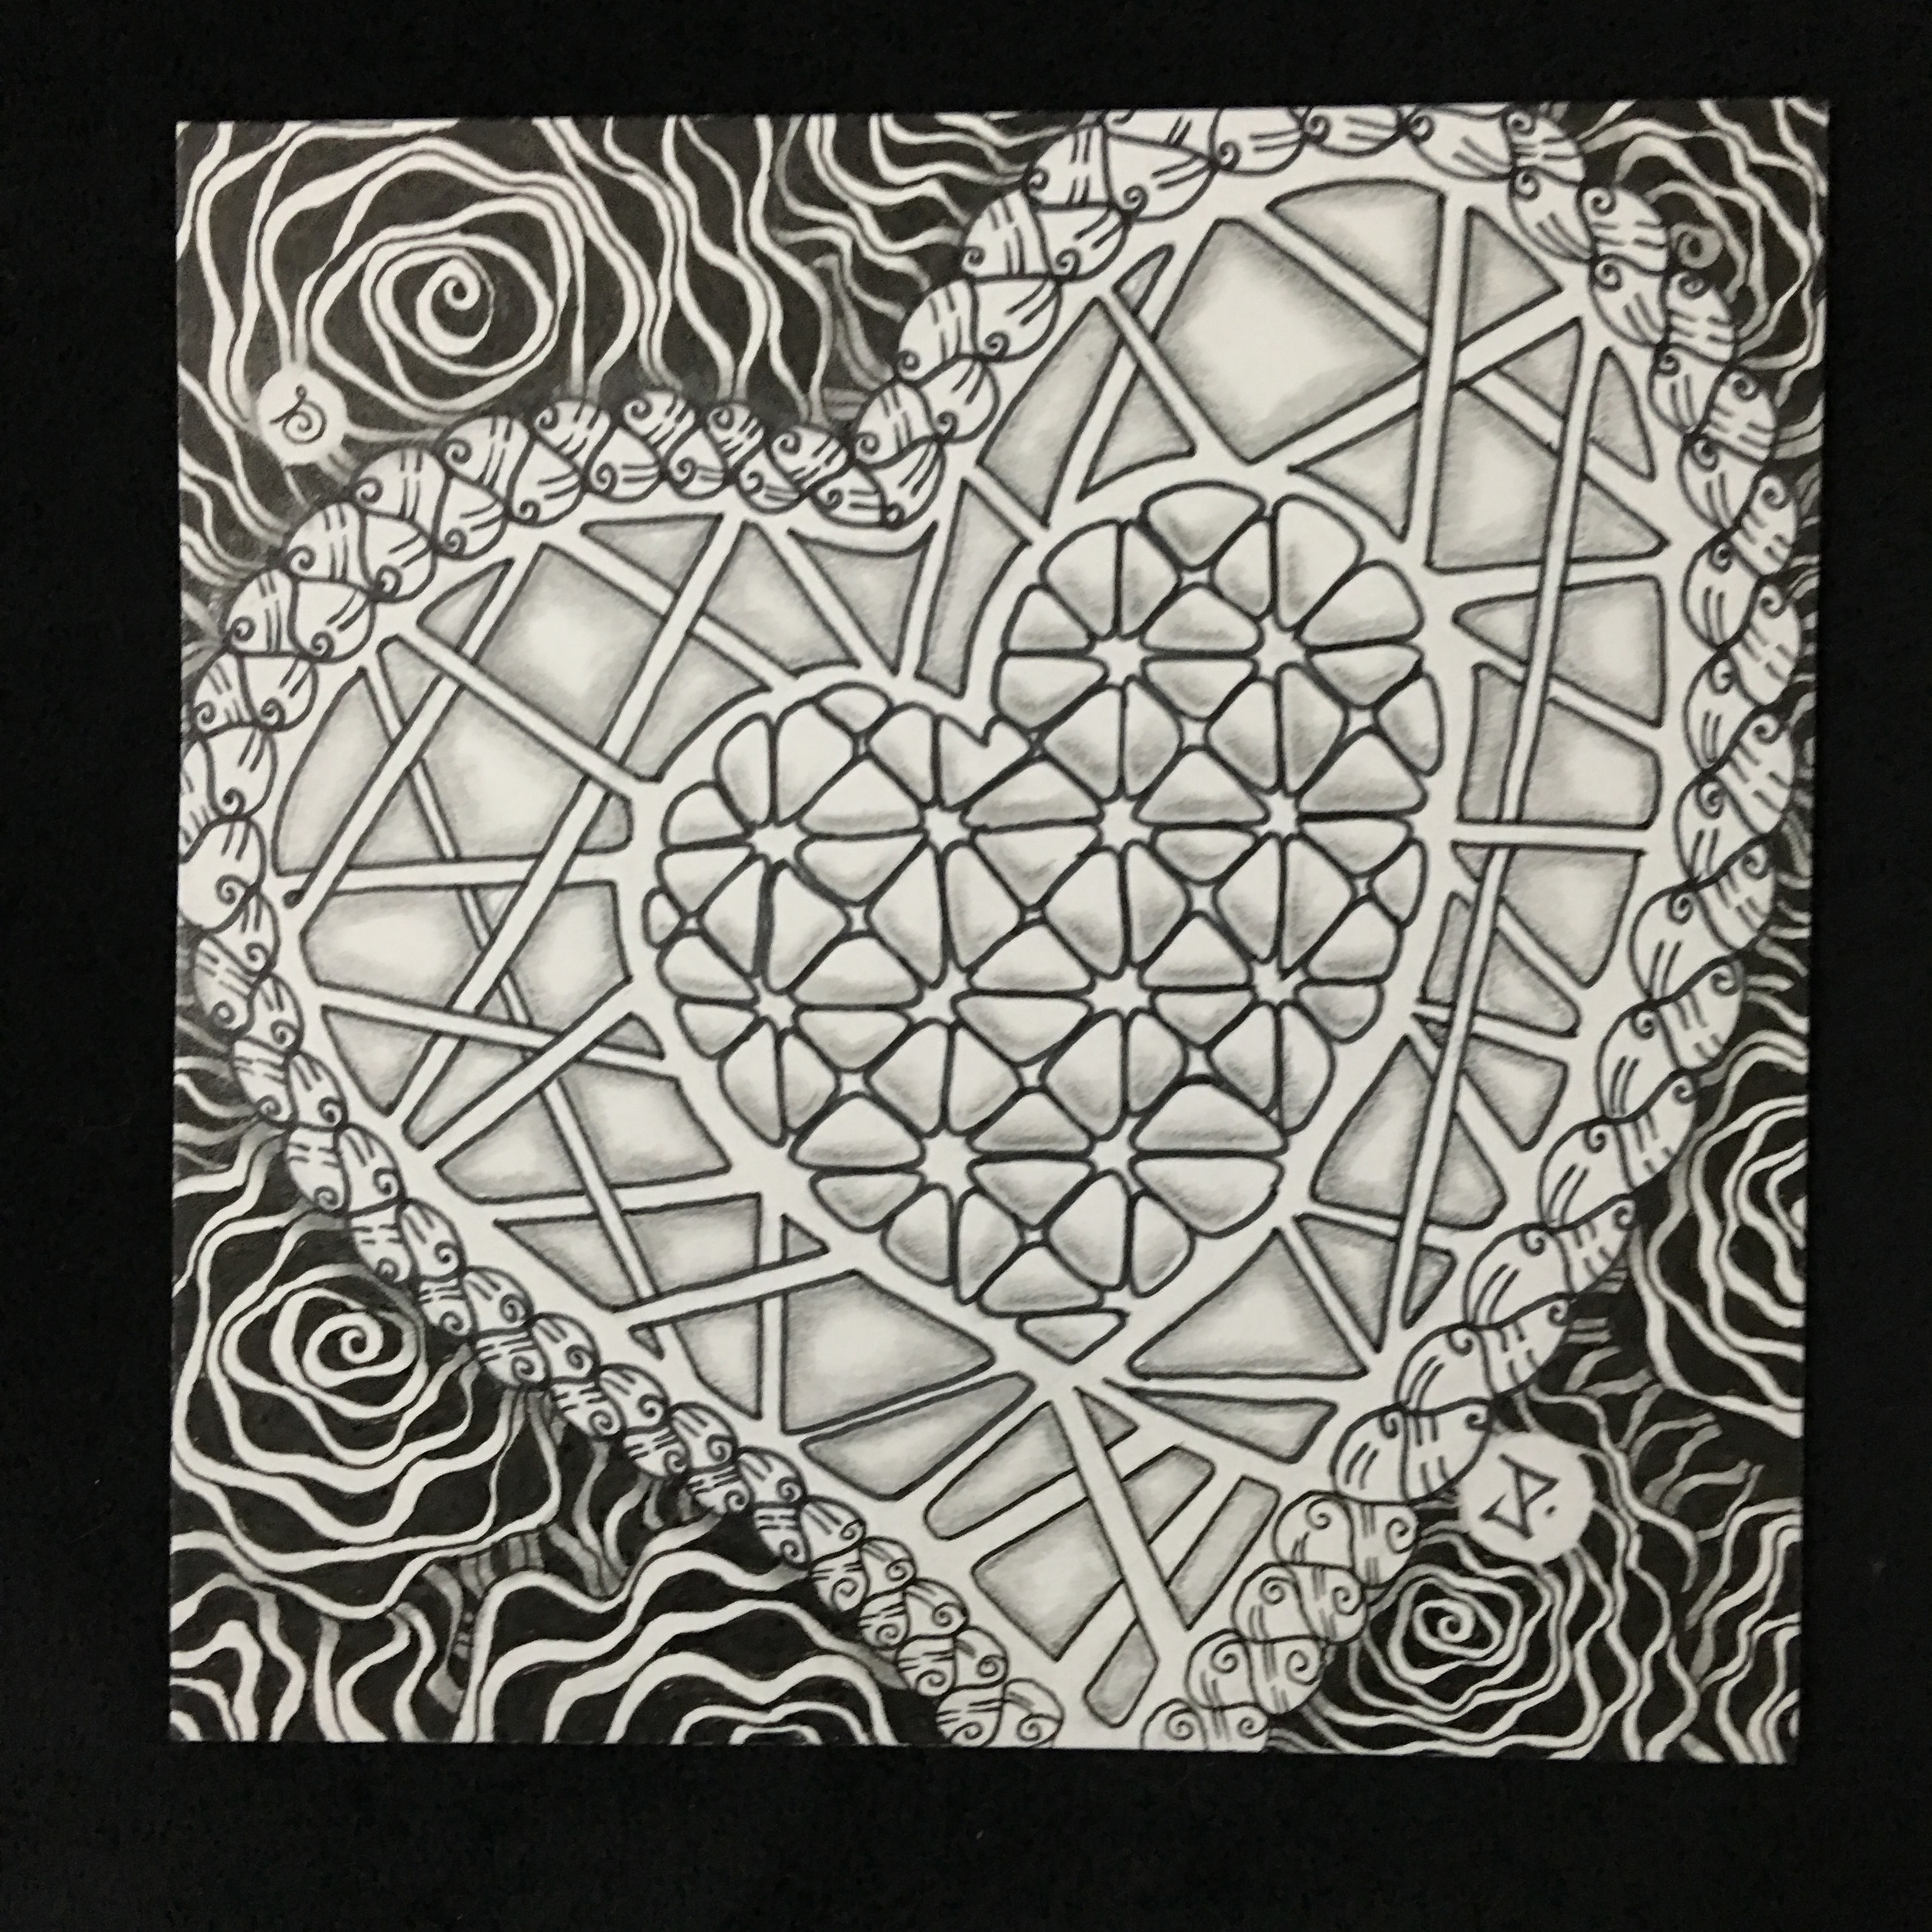 Travelling Tangles Tile- Janet Day and Stephanie Jennifer